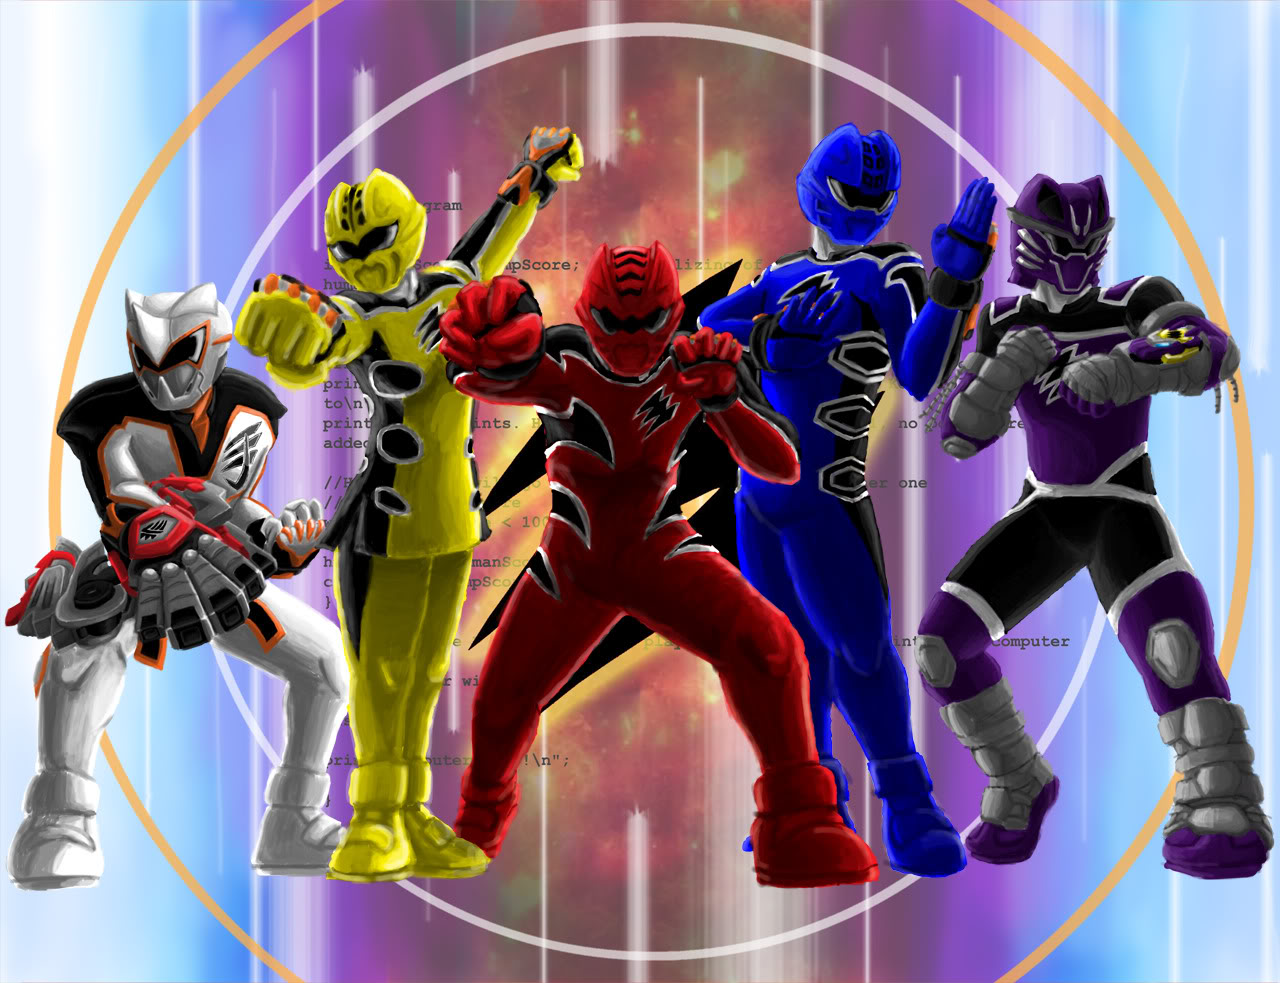 Power rangers jungle fury images power rangers jungle fury hd power rangers jungle fury images power rangers jungle fury hd wallpaper and background photos voltagebd Image collections